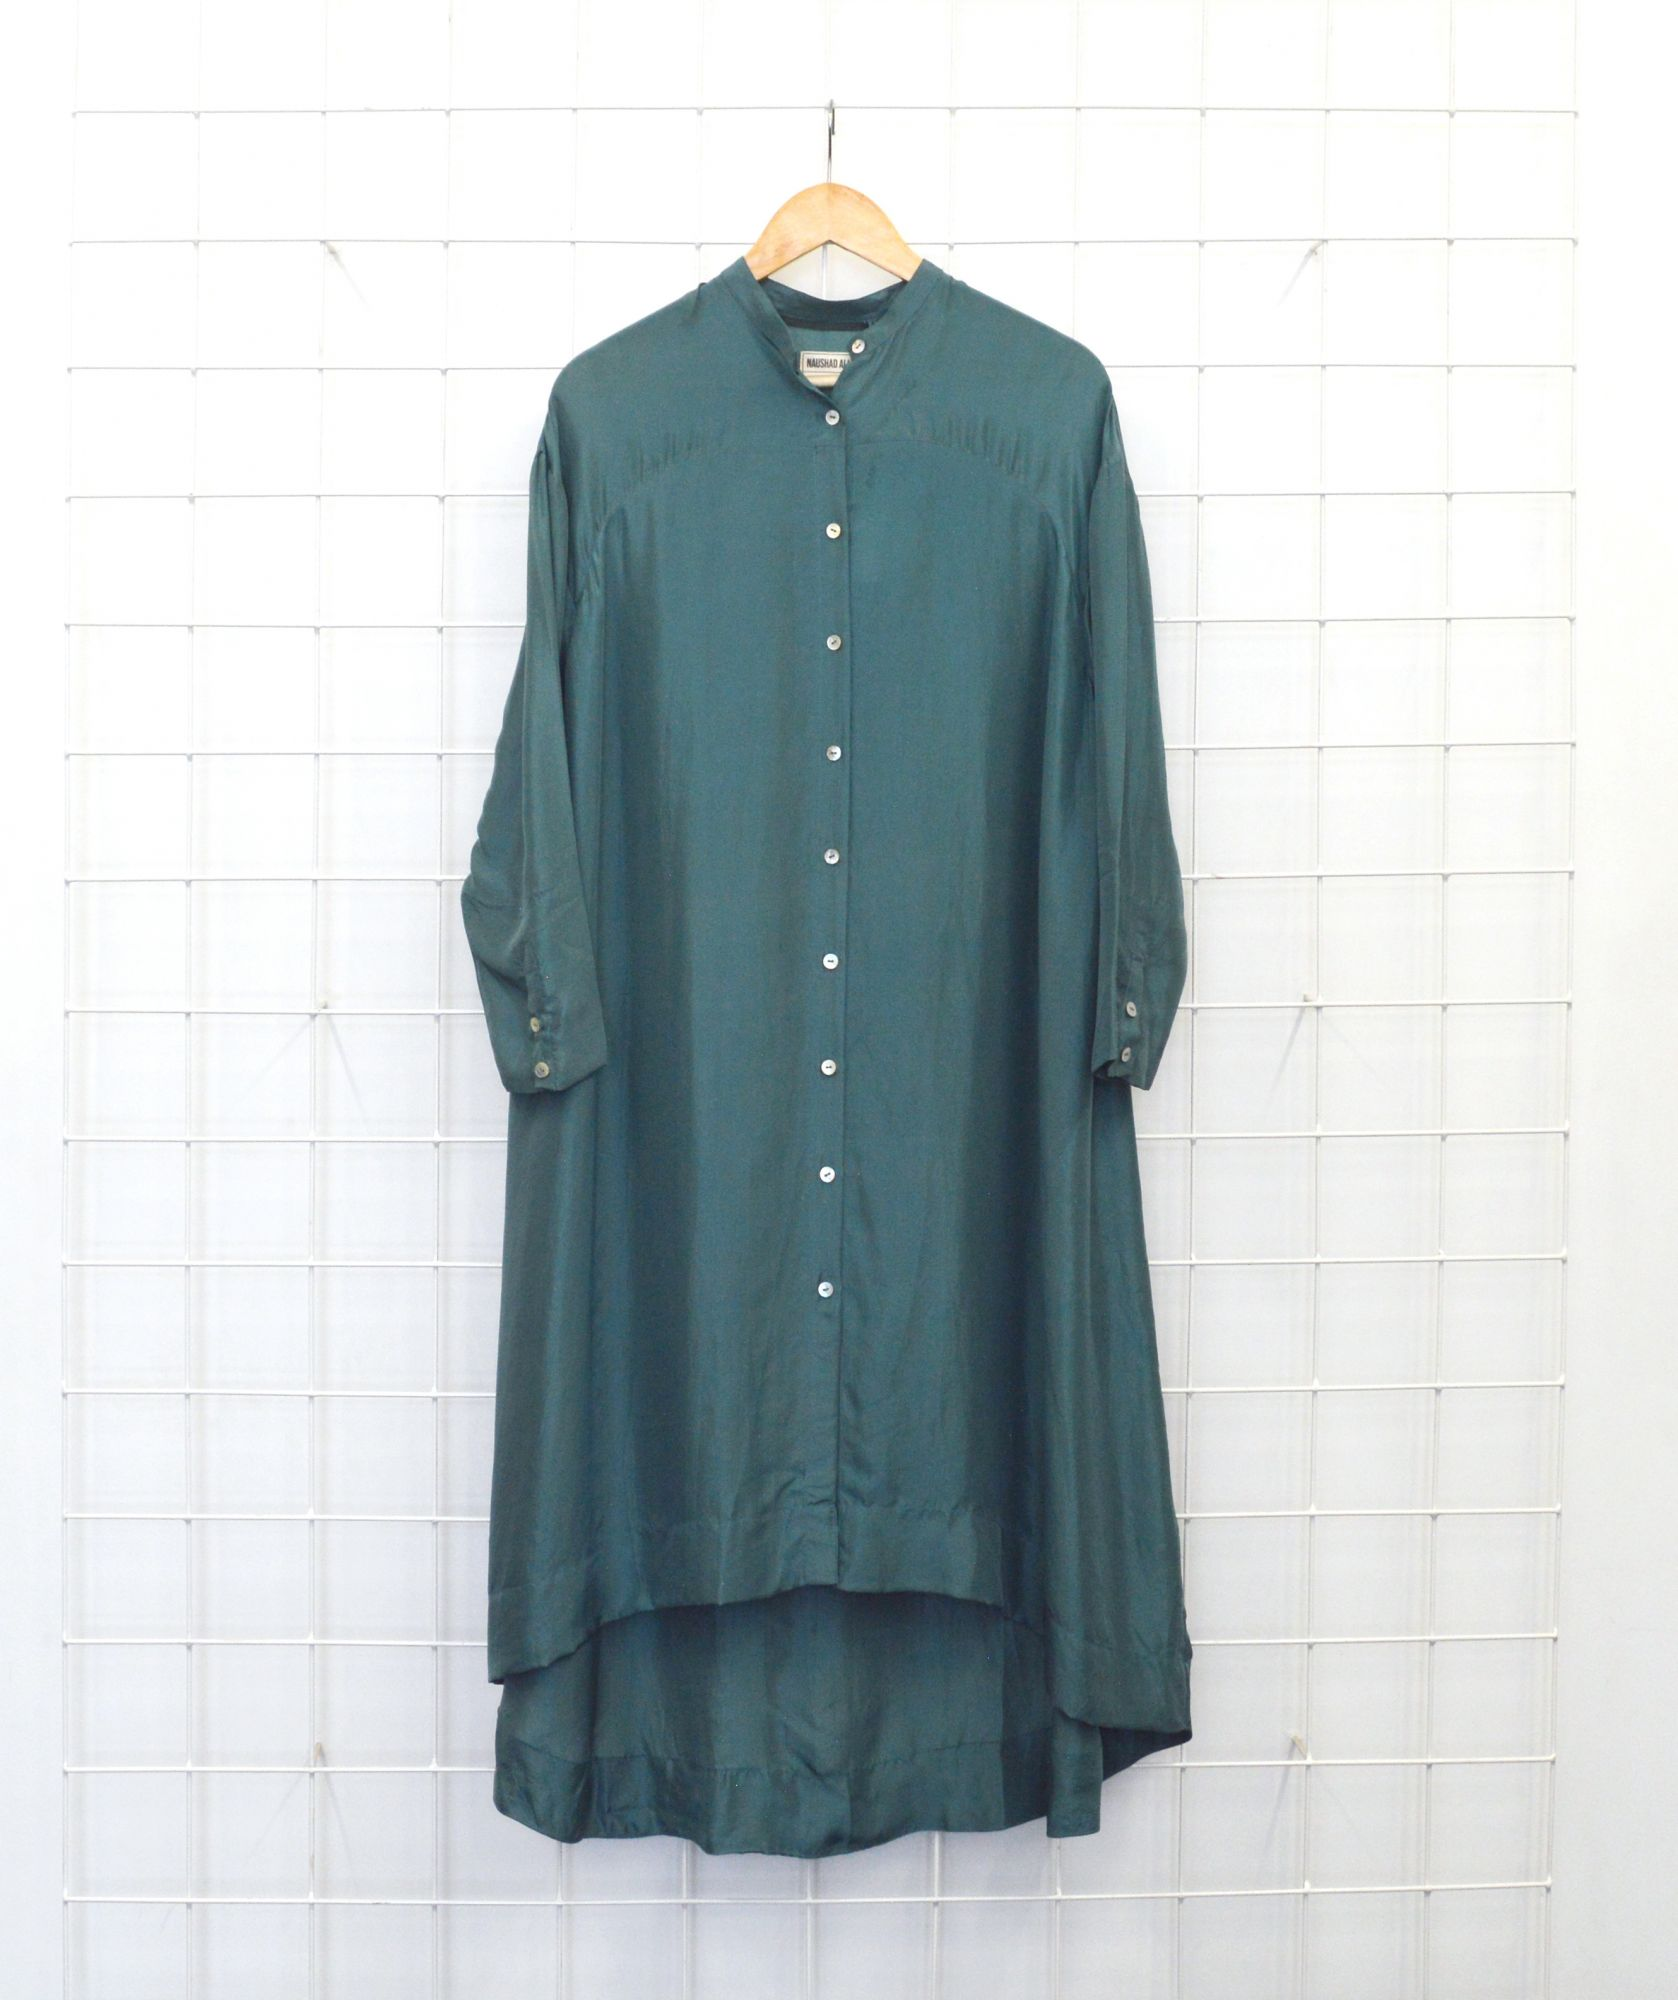 A-Line Shirt Dress - Teal